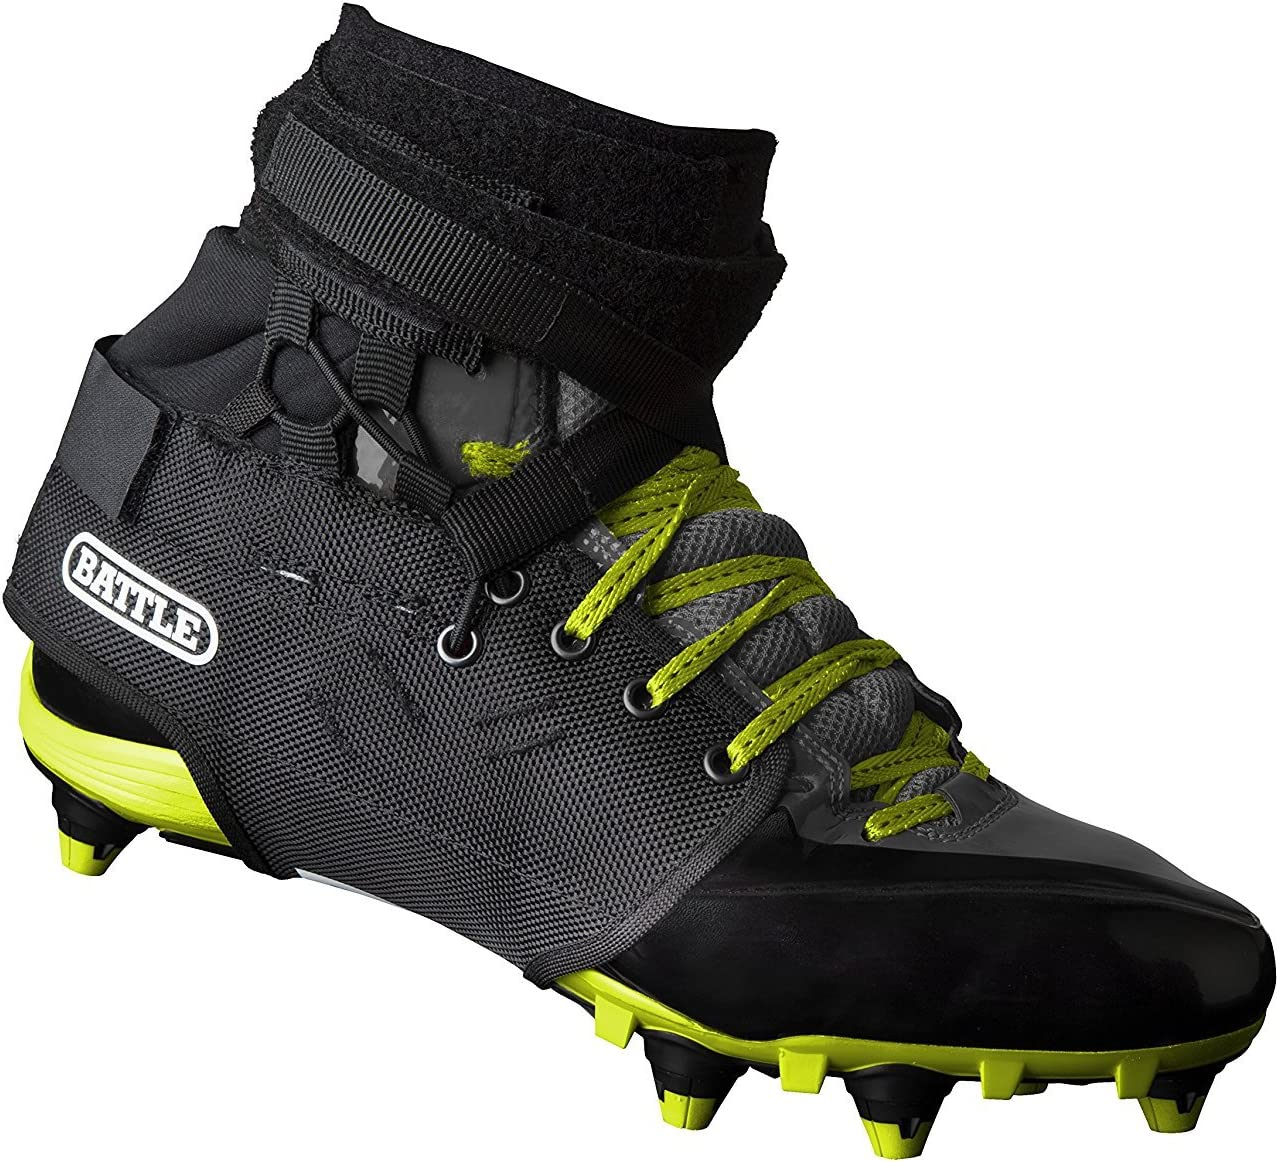 Battle Luxury Sports xFast Sales Ankle System Support